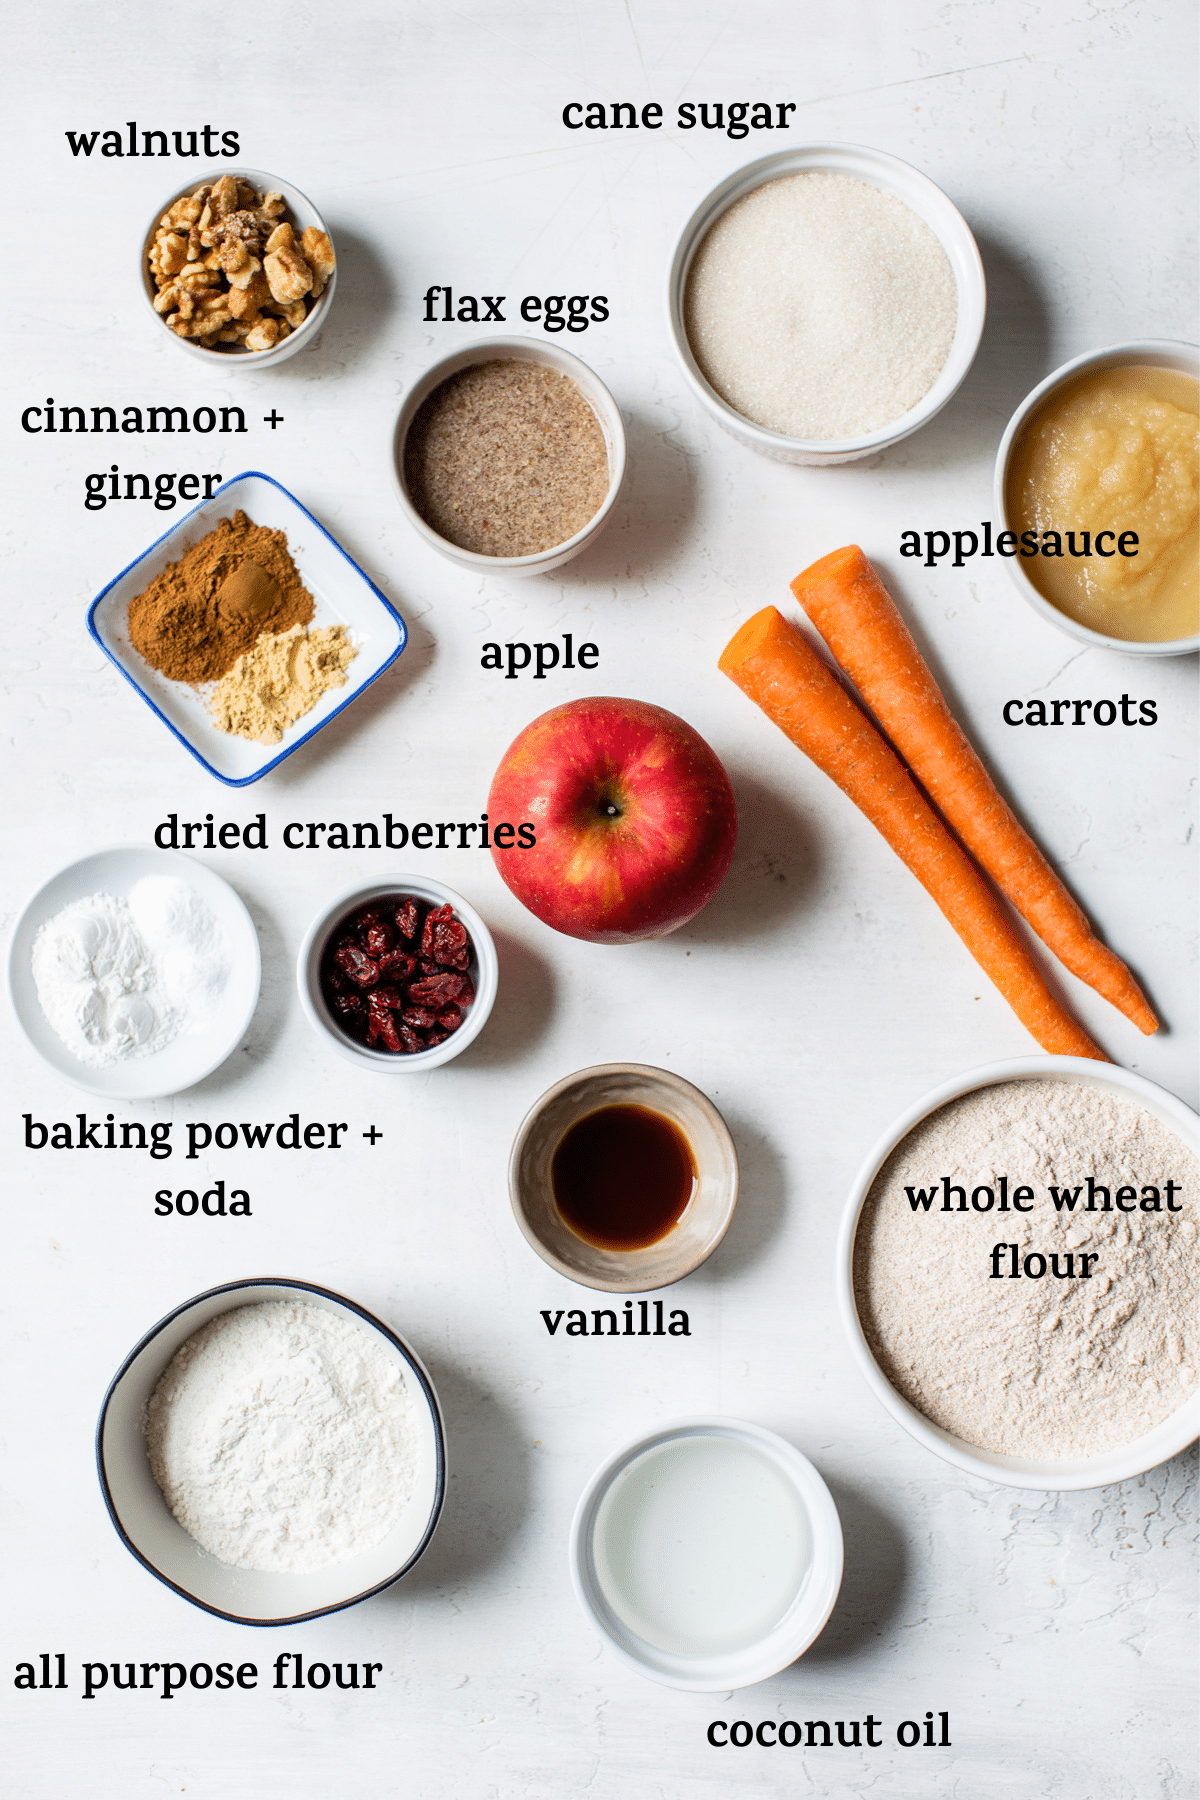 ingredients on a table